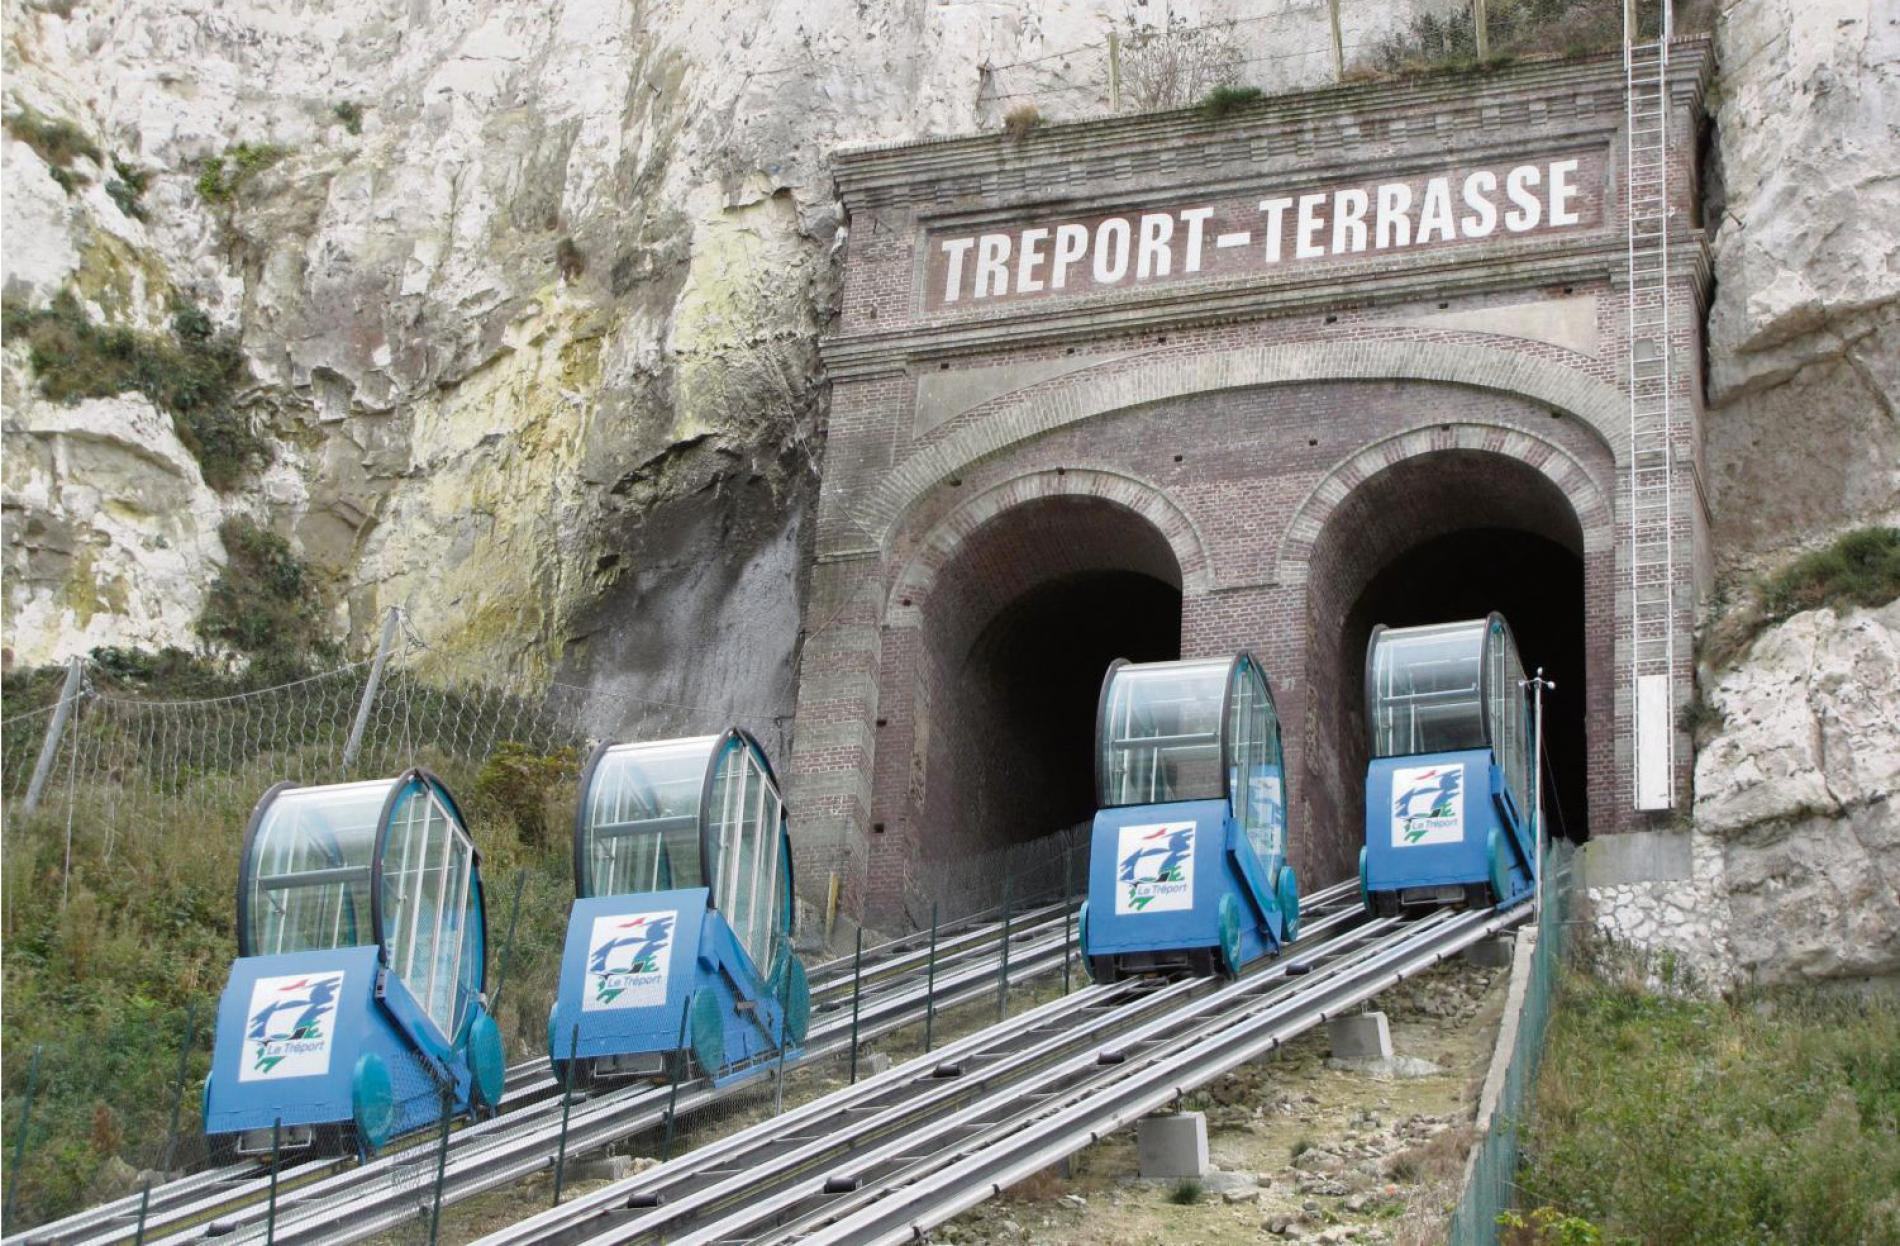 The Tréport and the funicular